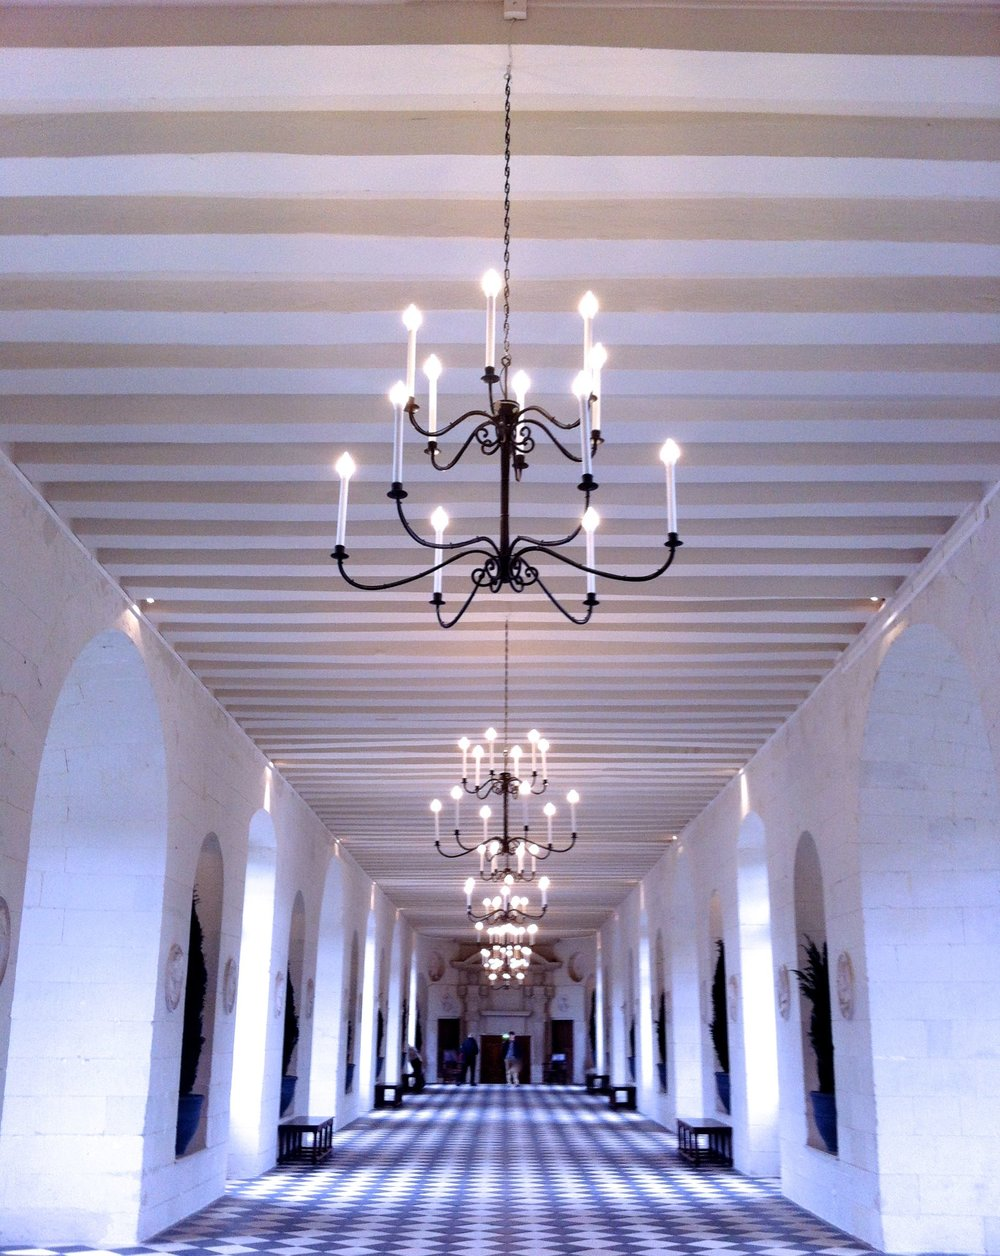 The gallery at Chenonceau